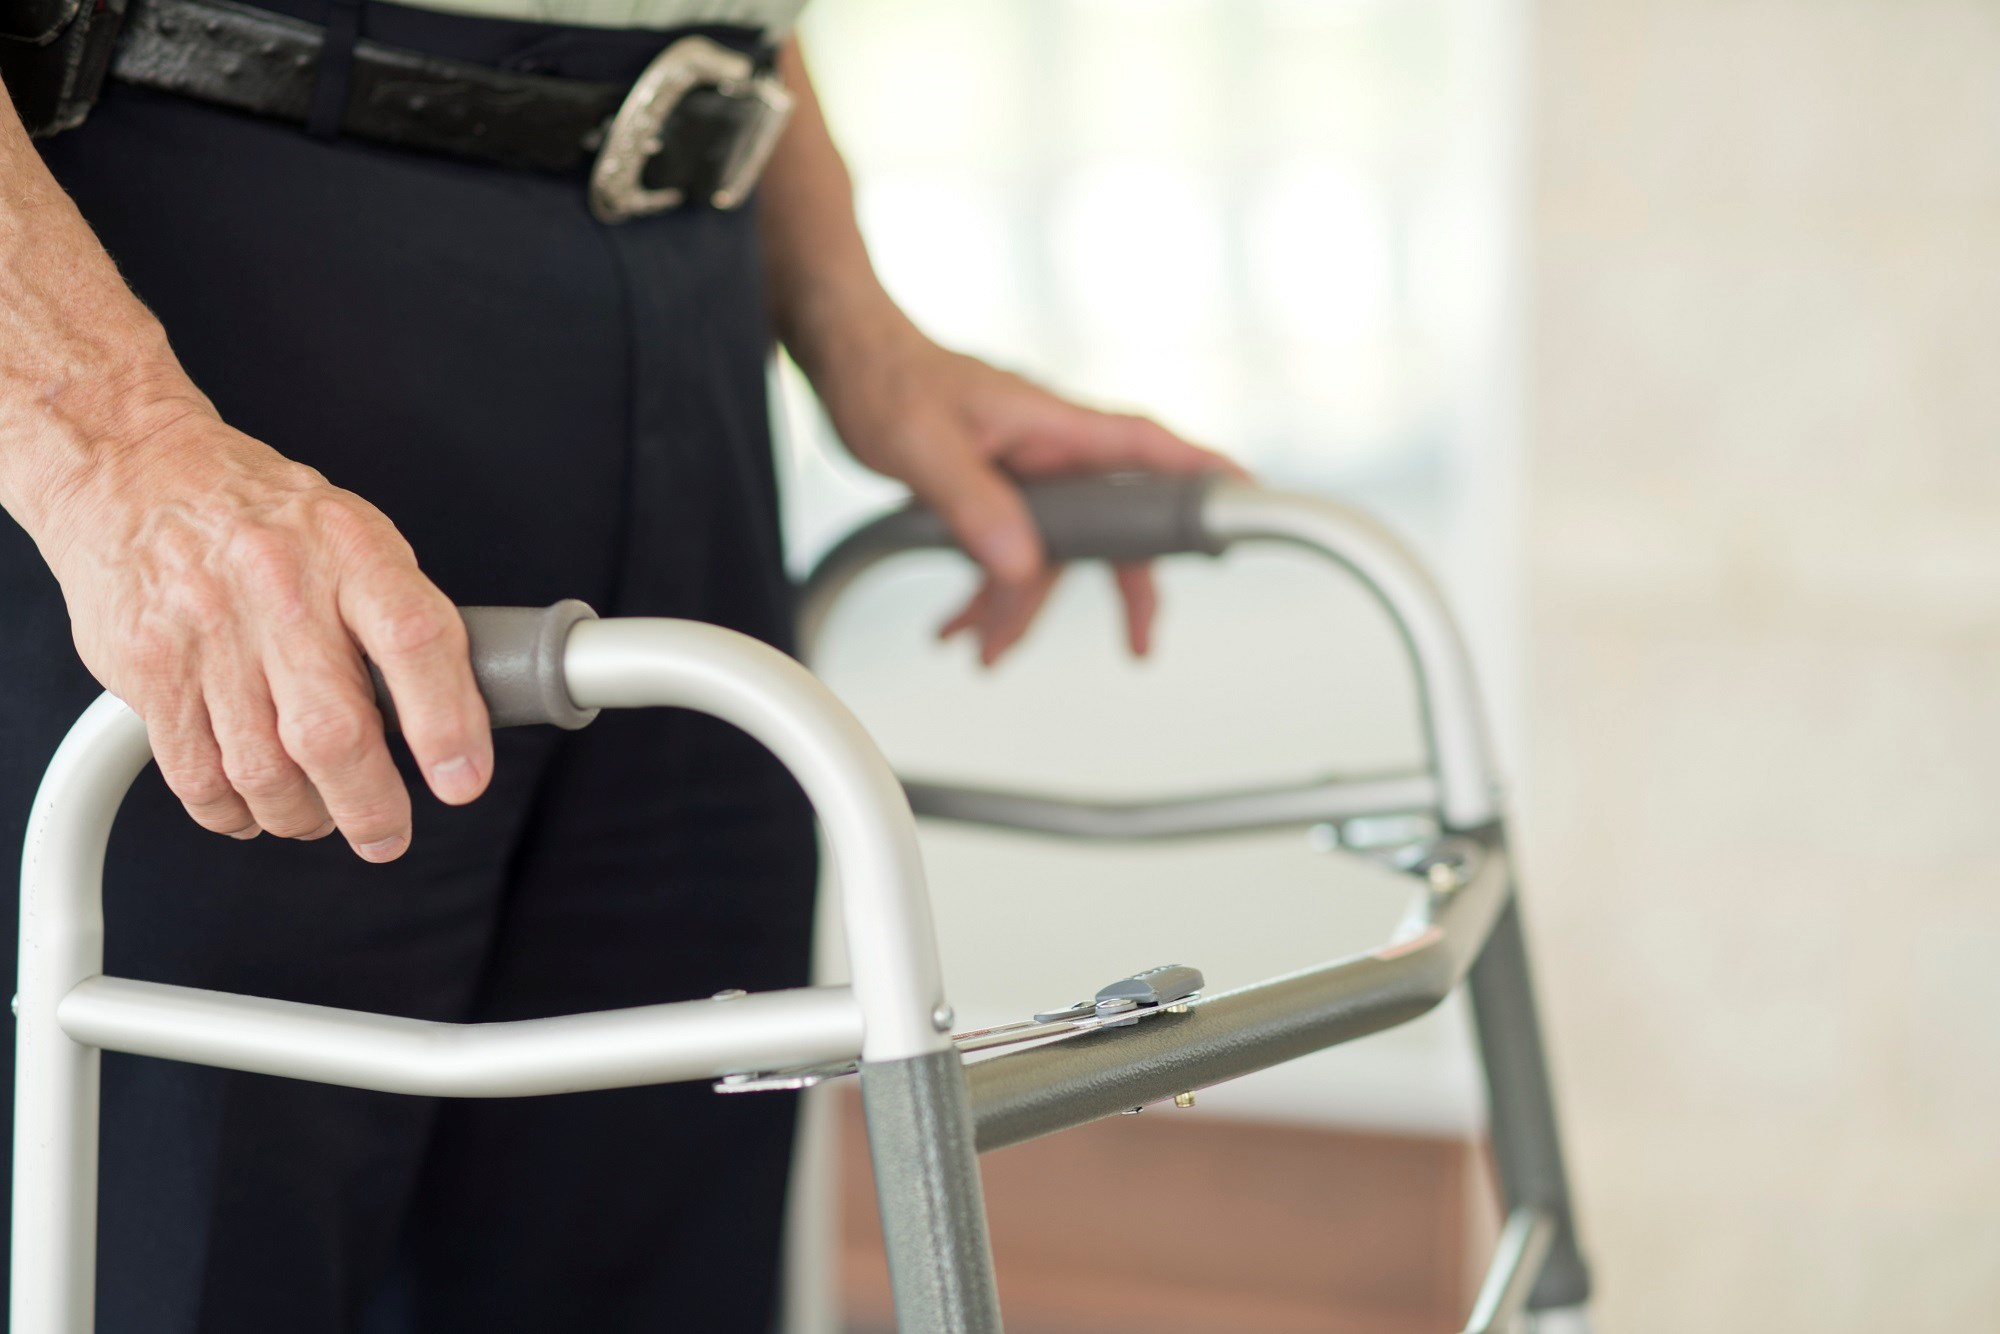 Use of Walking Aids May Predict Participation Levels in Patients With MS